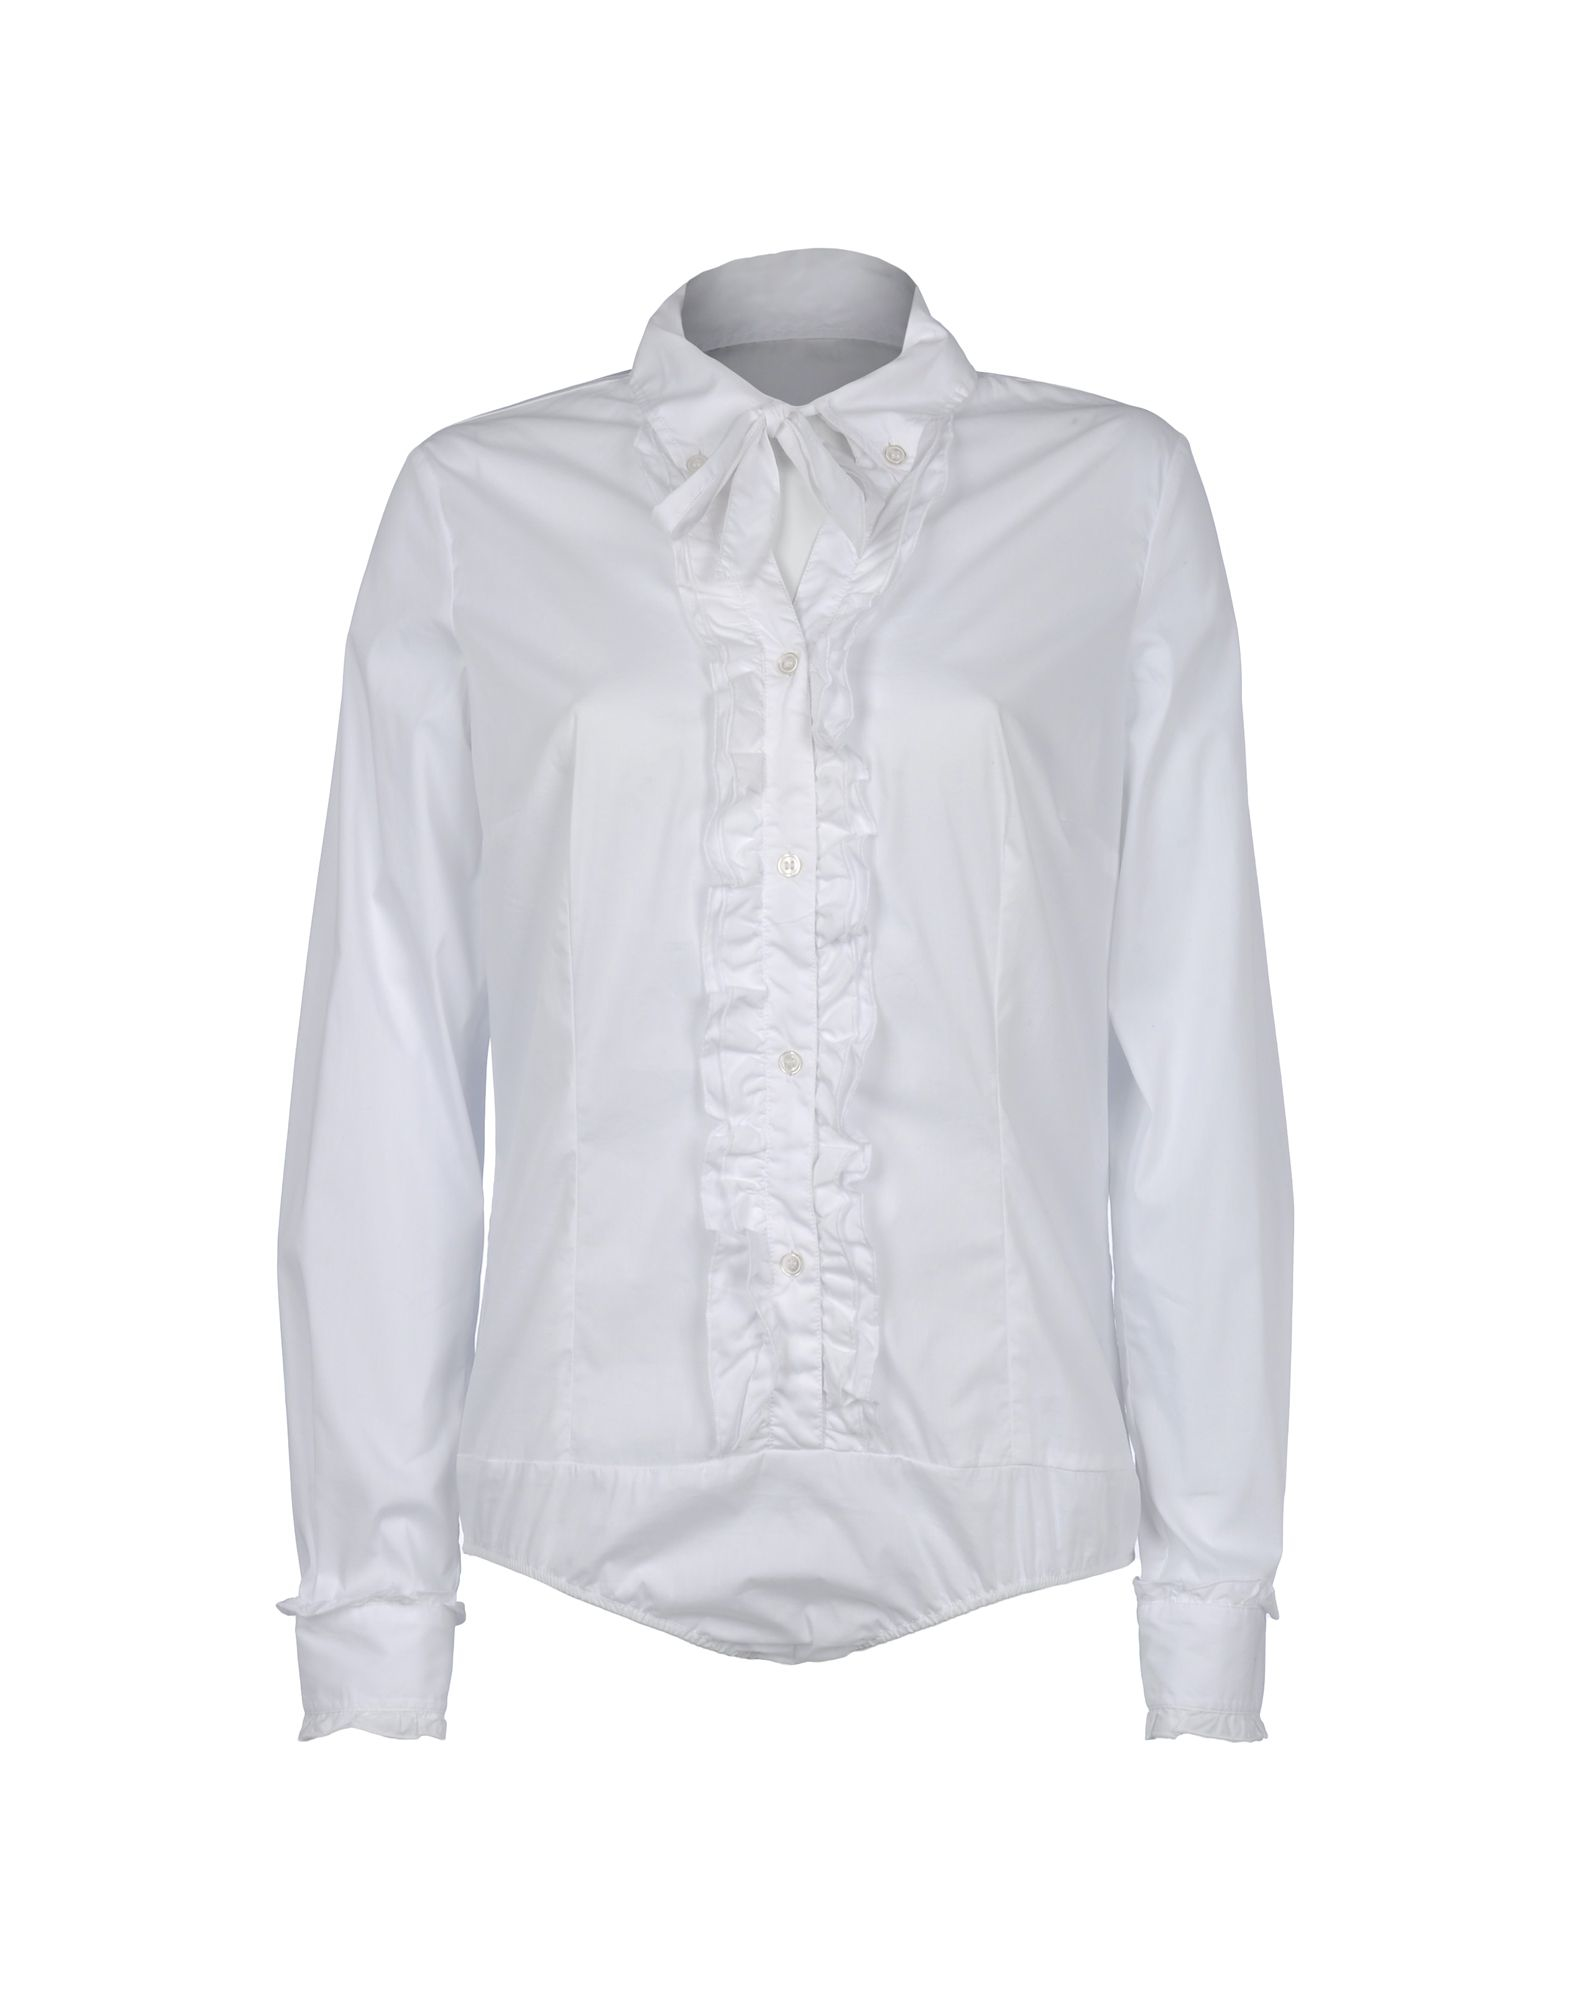 ae410879418e5 Lyst - Love Moschino Long Sleeve Shirt in White